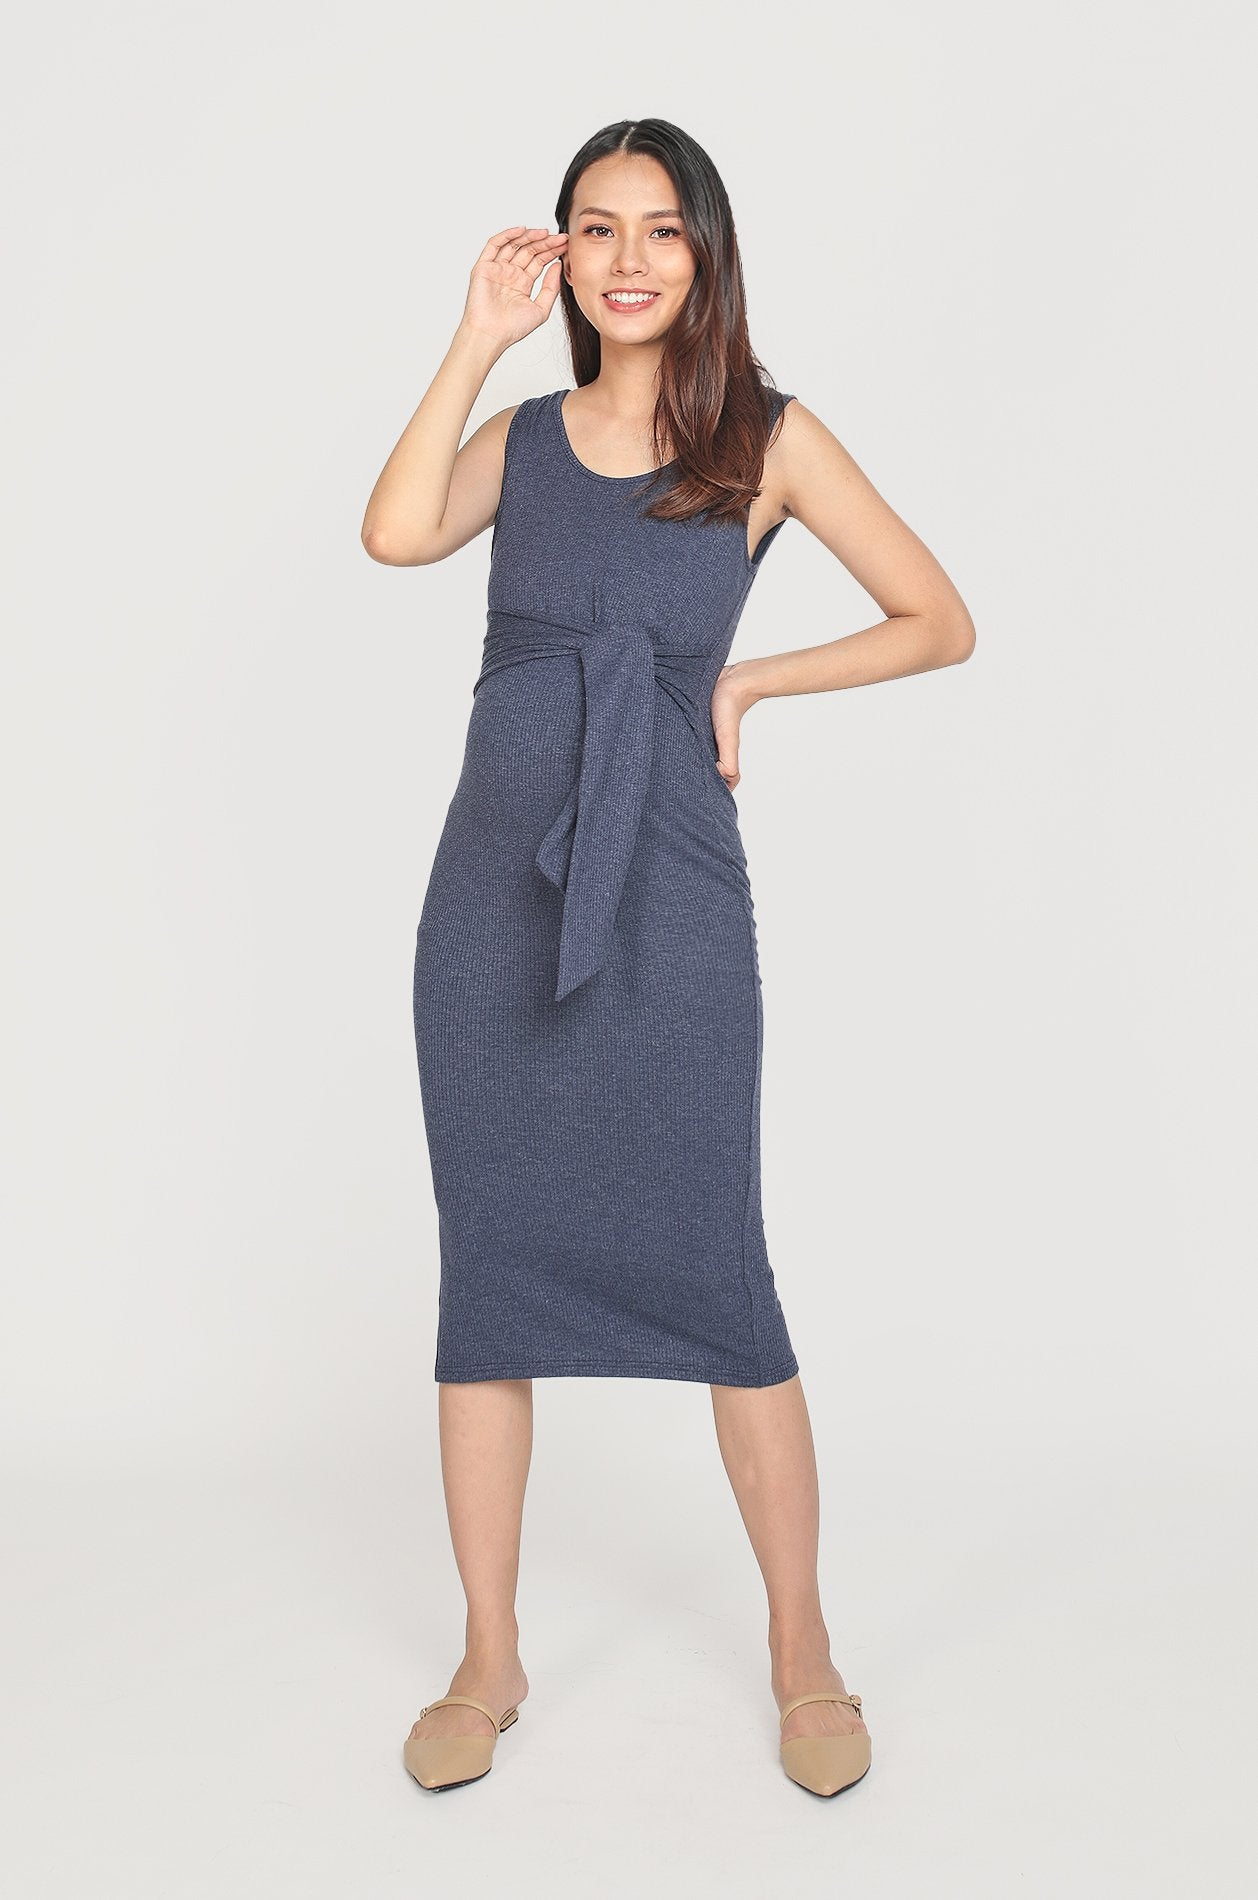 Brooke Shimmer Ribbon Nursing Dress In Navy Nursing Wear Jump Eat Cry